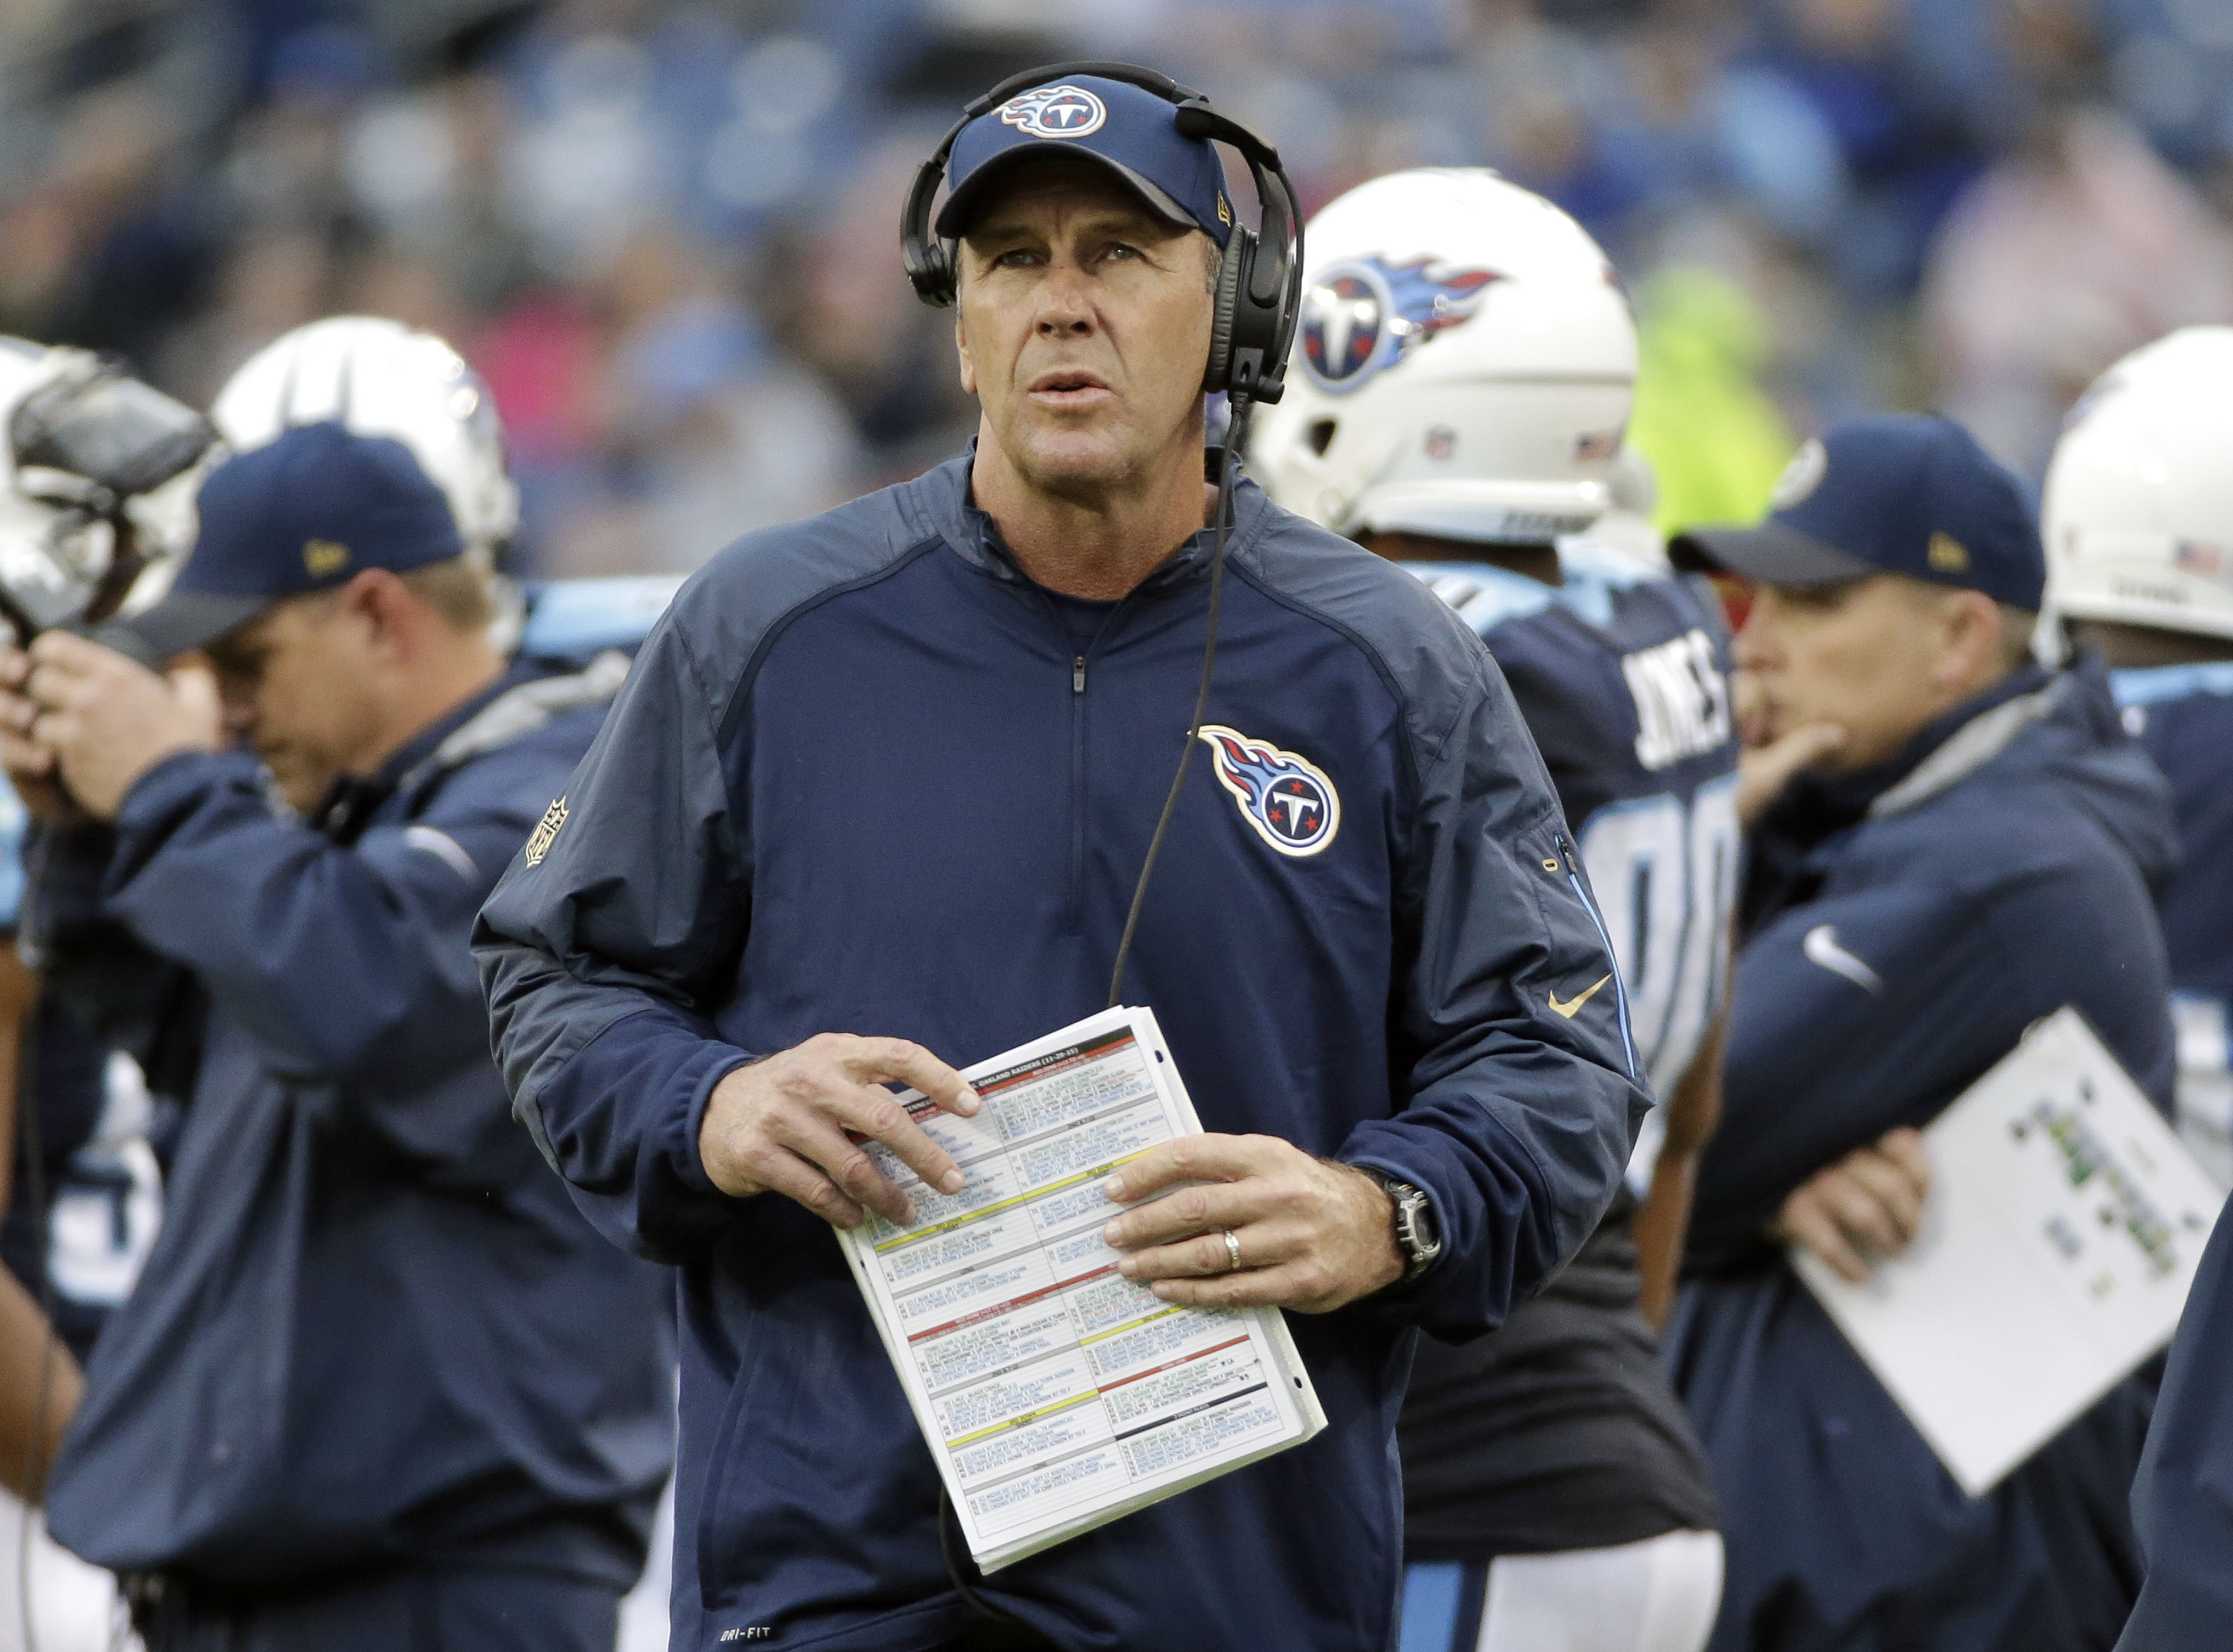 Tennessee Titans interim head coach Mike Mularkey watches from the scoreboard in the first half of an NFL football game against the Oakland Raiders Sunday, Nov. 29, 2015, in Nashville, Tenn. (AP Photo/James Kenney)